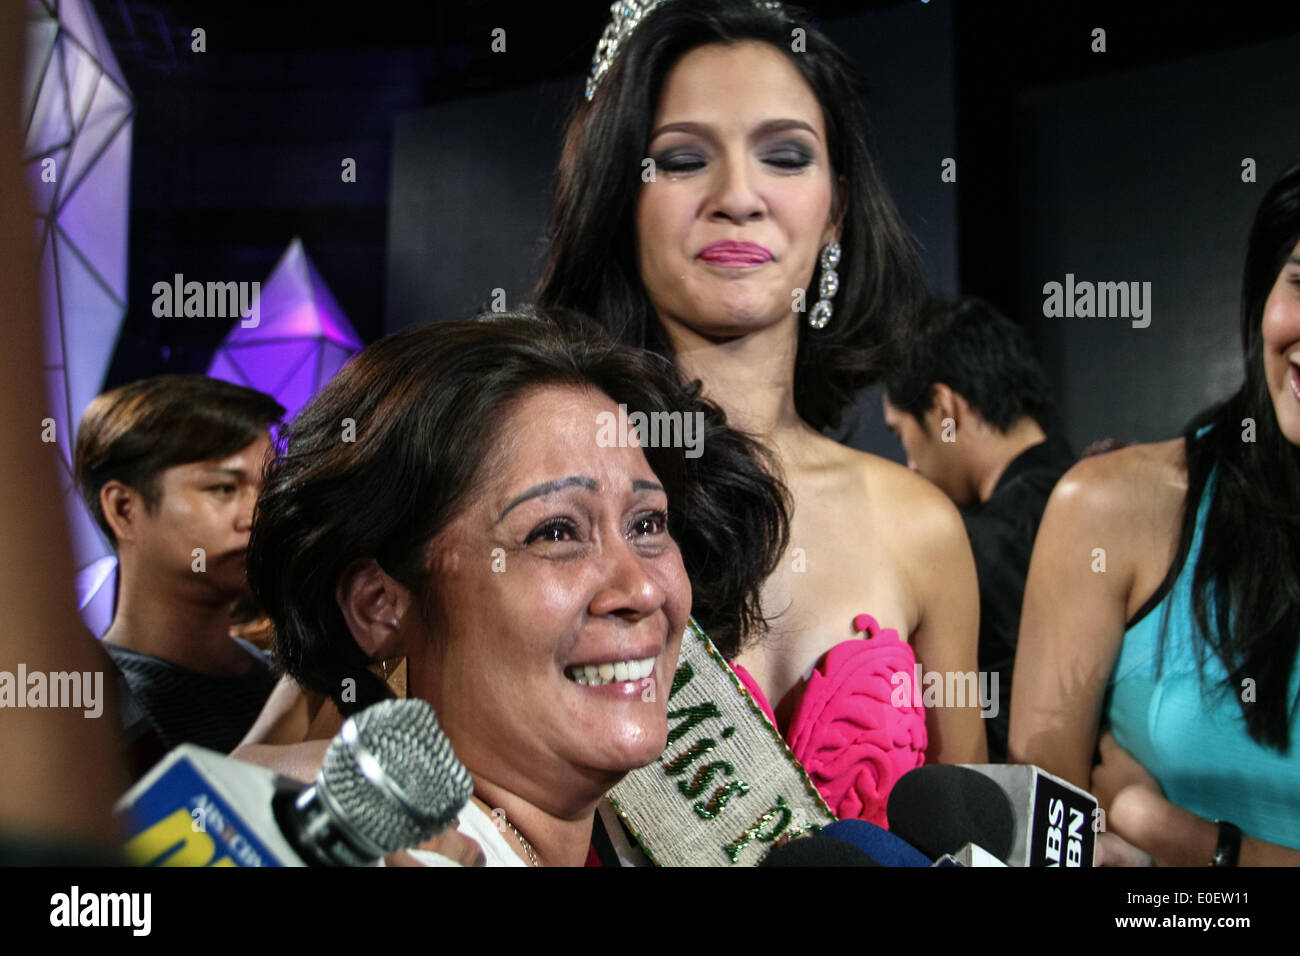 PASAY, PHILIPPINES - MAY 11: Miss Earth Philippines Jamie Herrel (center) with her teary eyed mother being interviewed by local media at the recently concluded Miss Earth Philippines 2014 coronation night at the Mall of Asia Arena in Pasay City south of Manila. (Photo by J Gerard Seguia/Pacific Press) - Stock Image